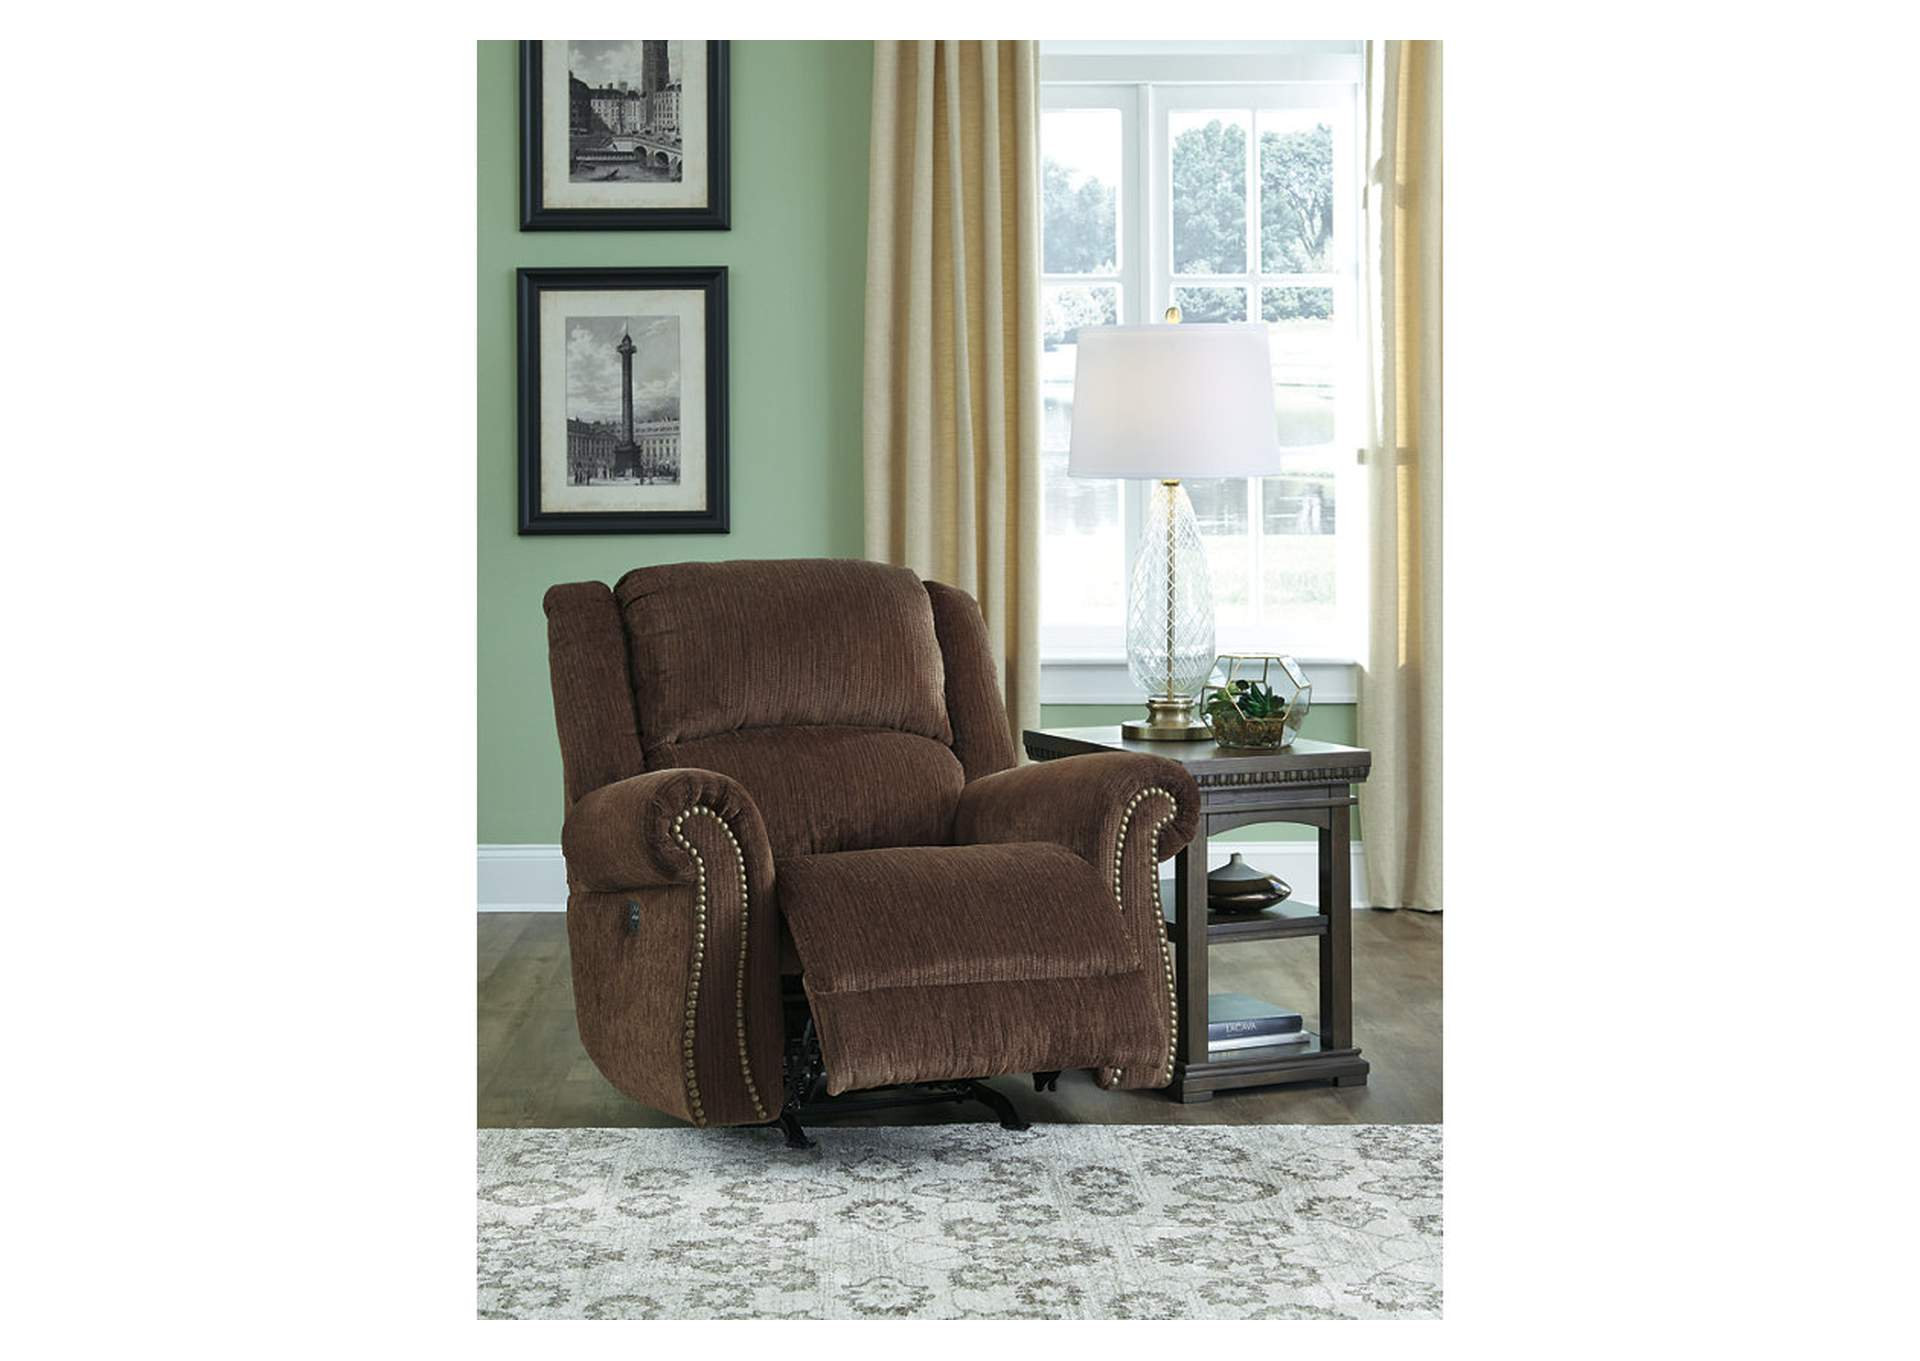 Goodlow Chocolate Power Reclining Rocker w/Adjustable Headrest,Signature Design By Ashley